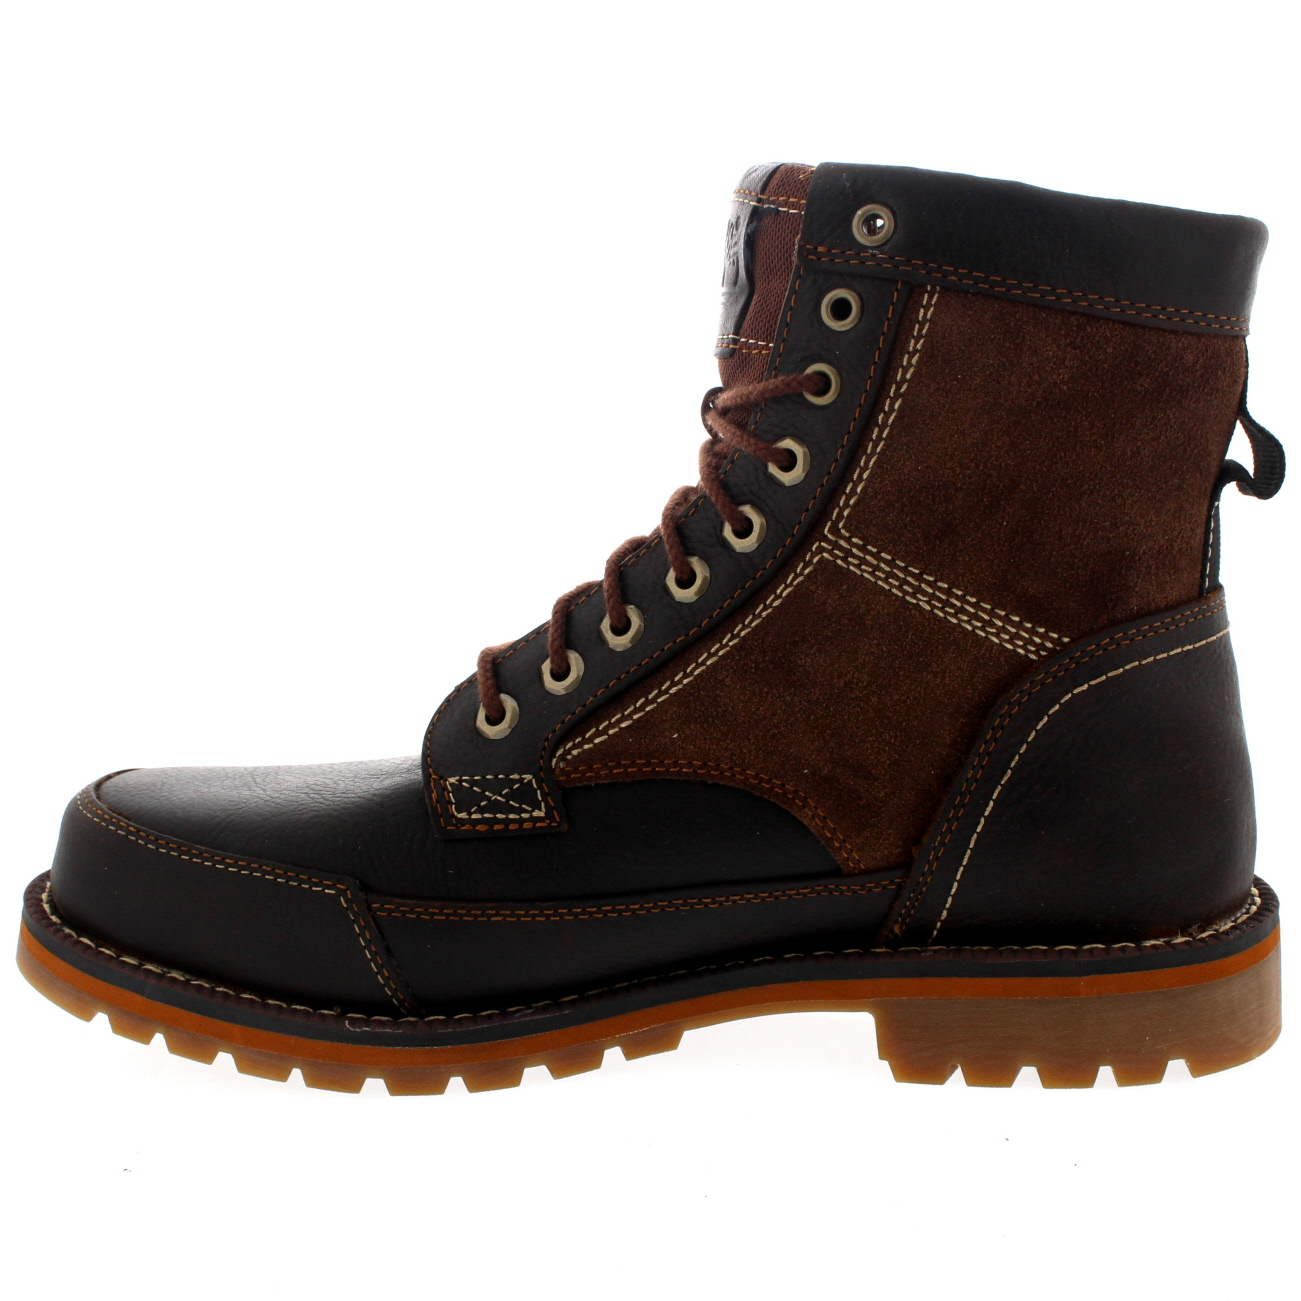 Timberland Gray Mens Footwear Leather Boots We have a rich New England heritage that inspires the way we make our products and run our business. We make boots, shoes, clothes and gear that are comfortable enough to wear all day and rugged enough for all year.